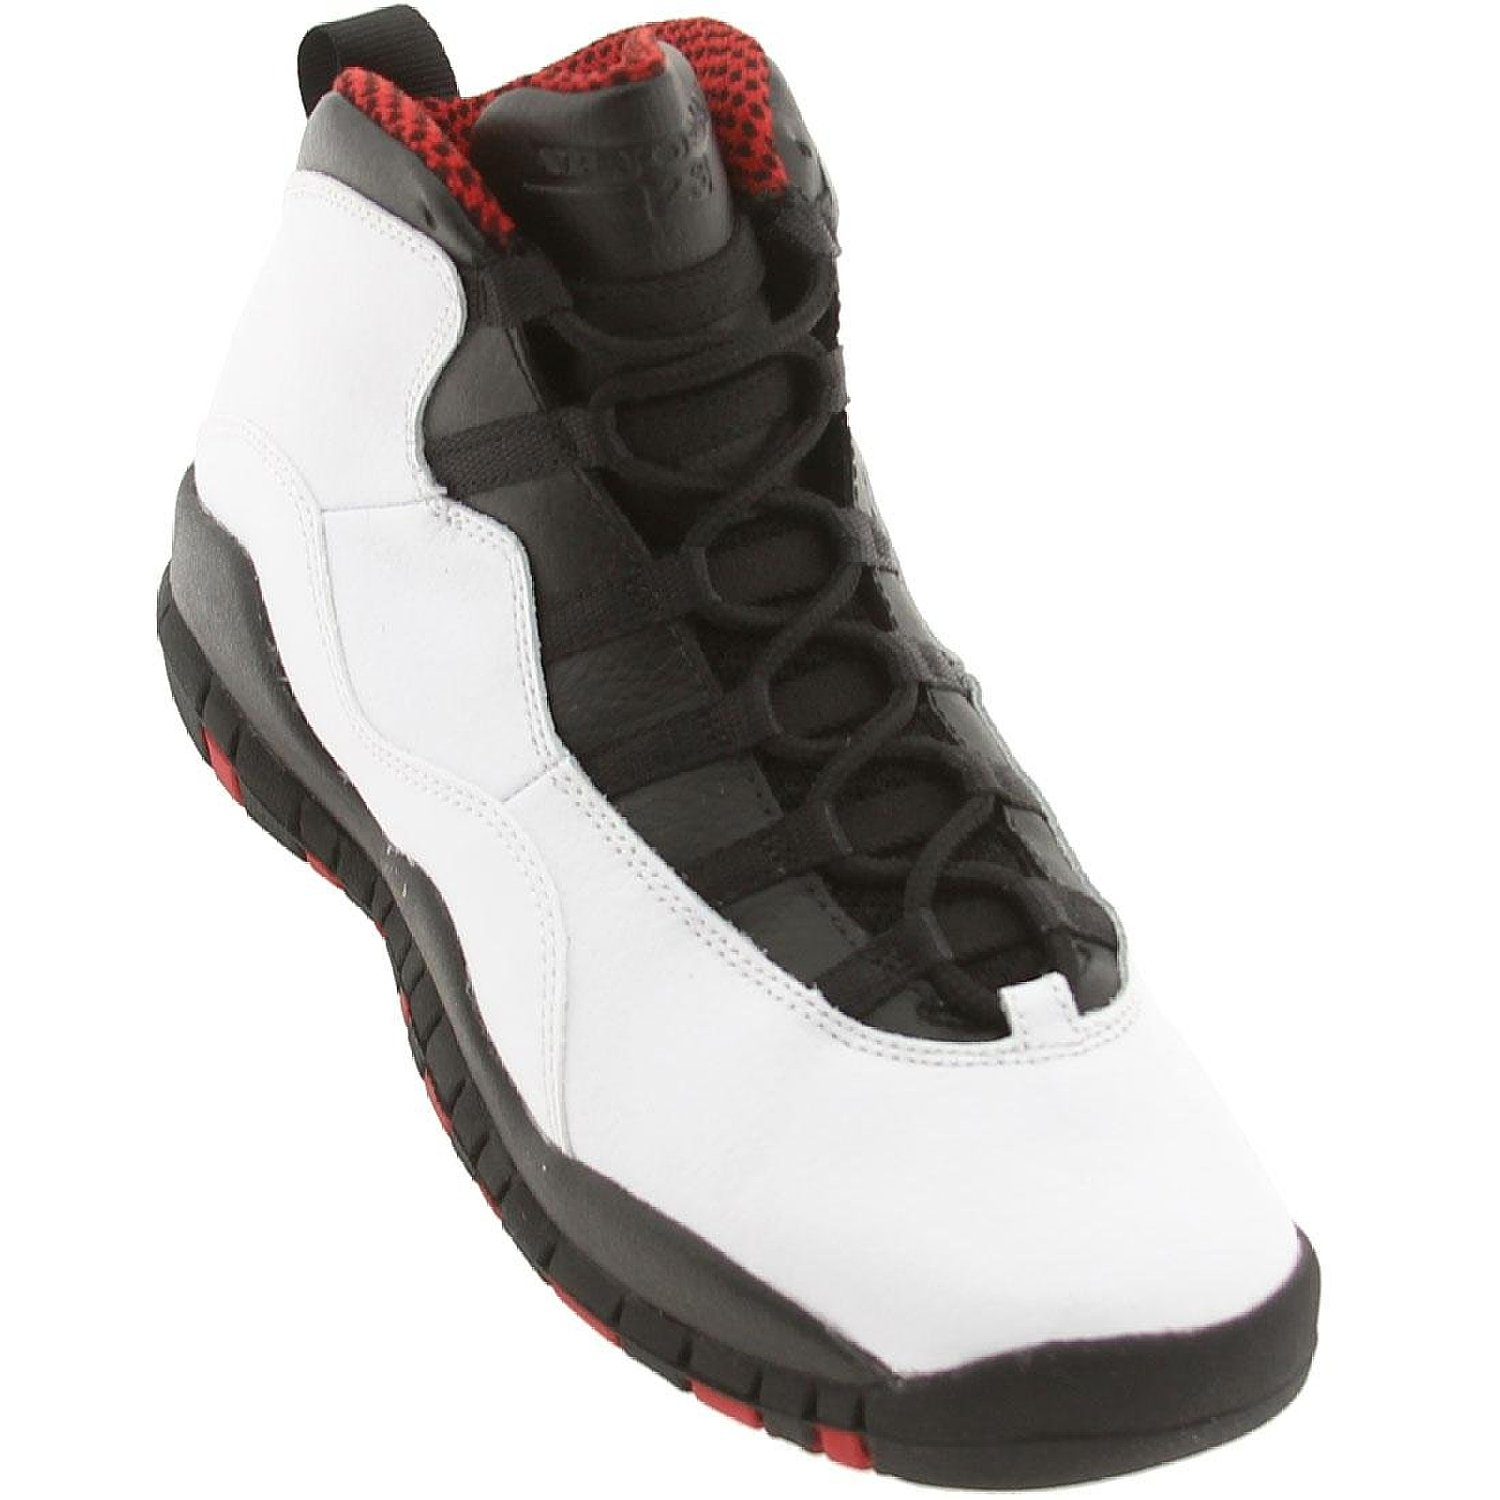 "Nike Boys Air Jordan 10 Retro (GS) ""Chicago"" Leather Basketball Shoes"